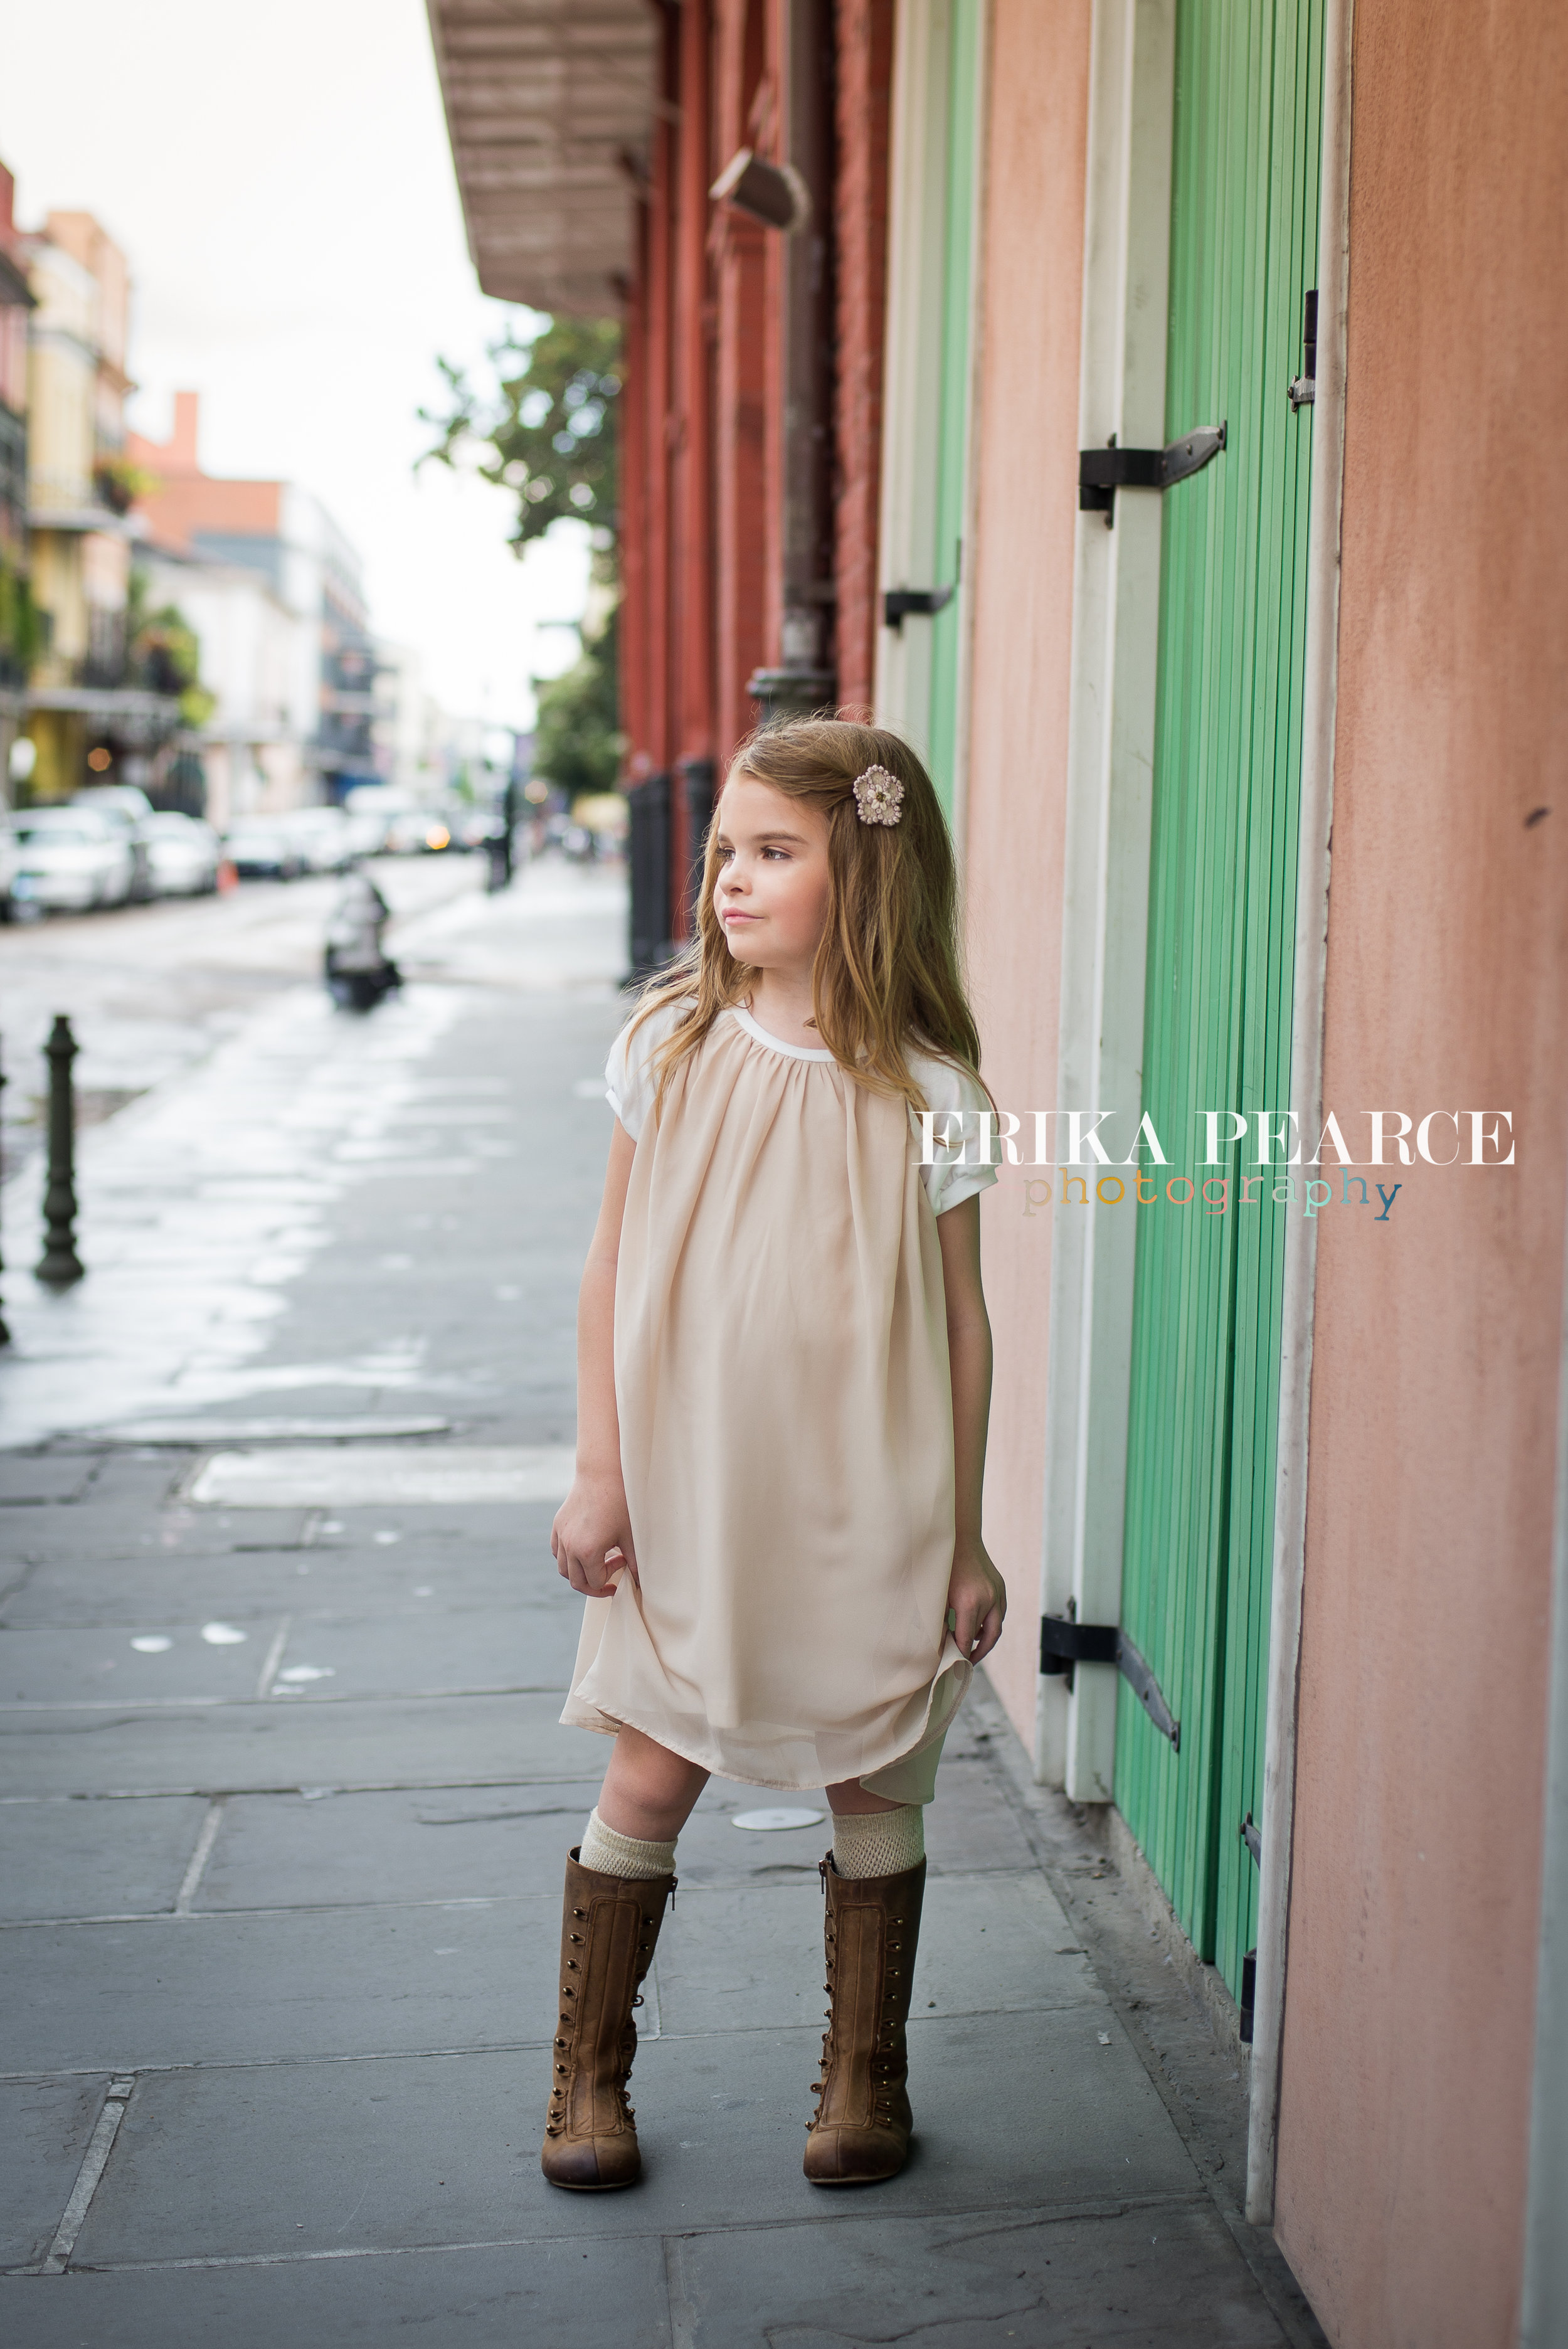 French Quarter Photography, Commercial Photographer